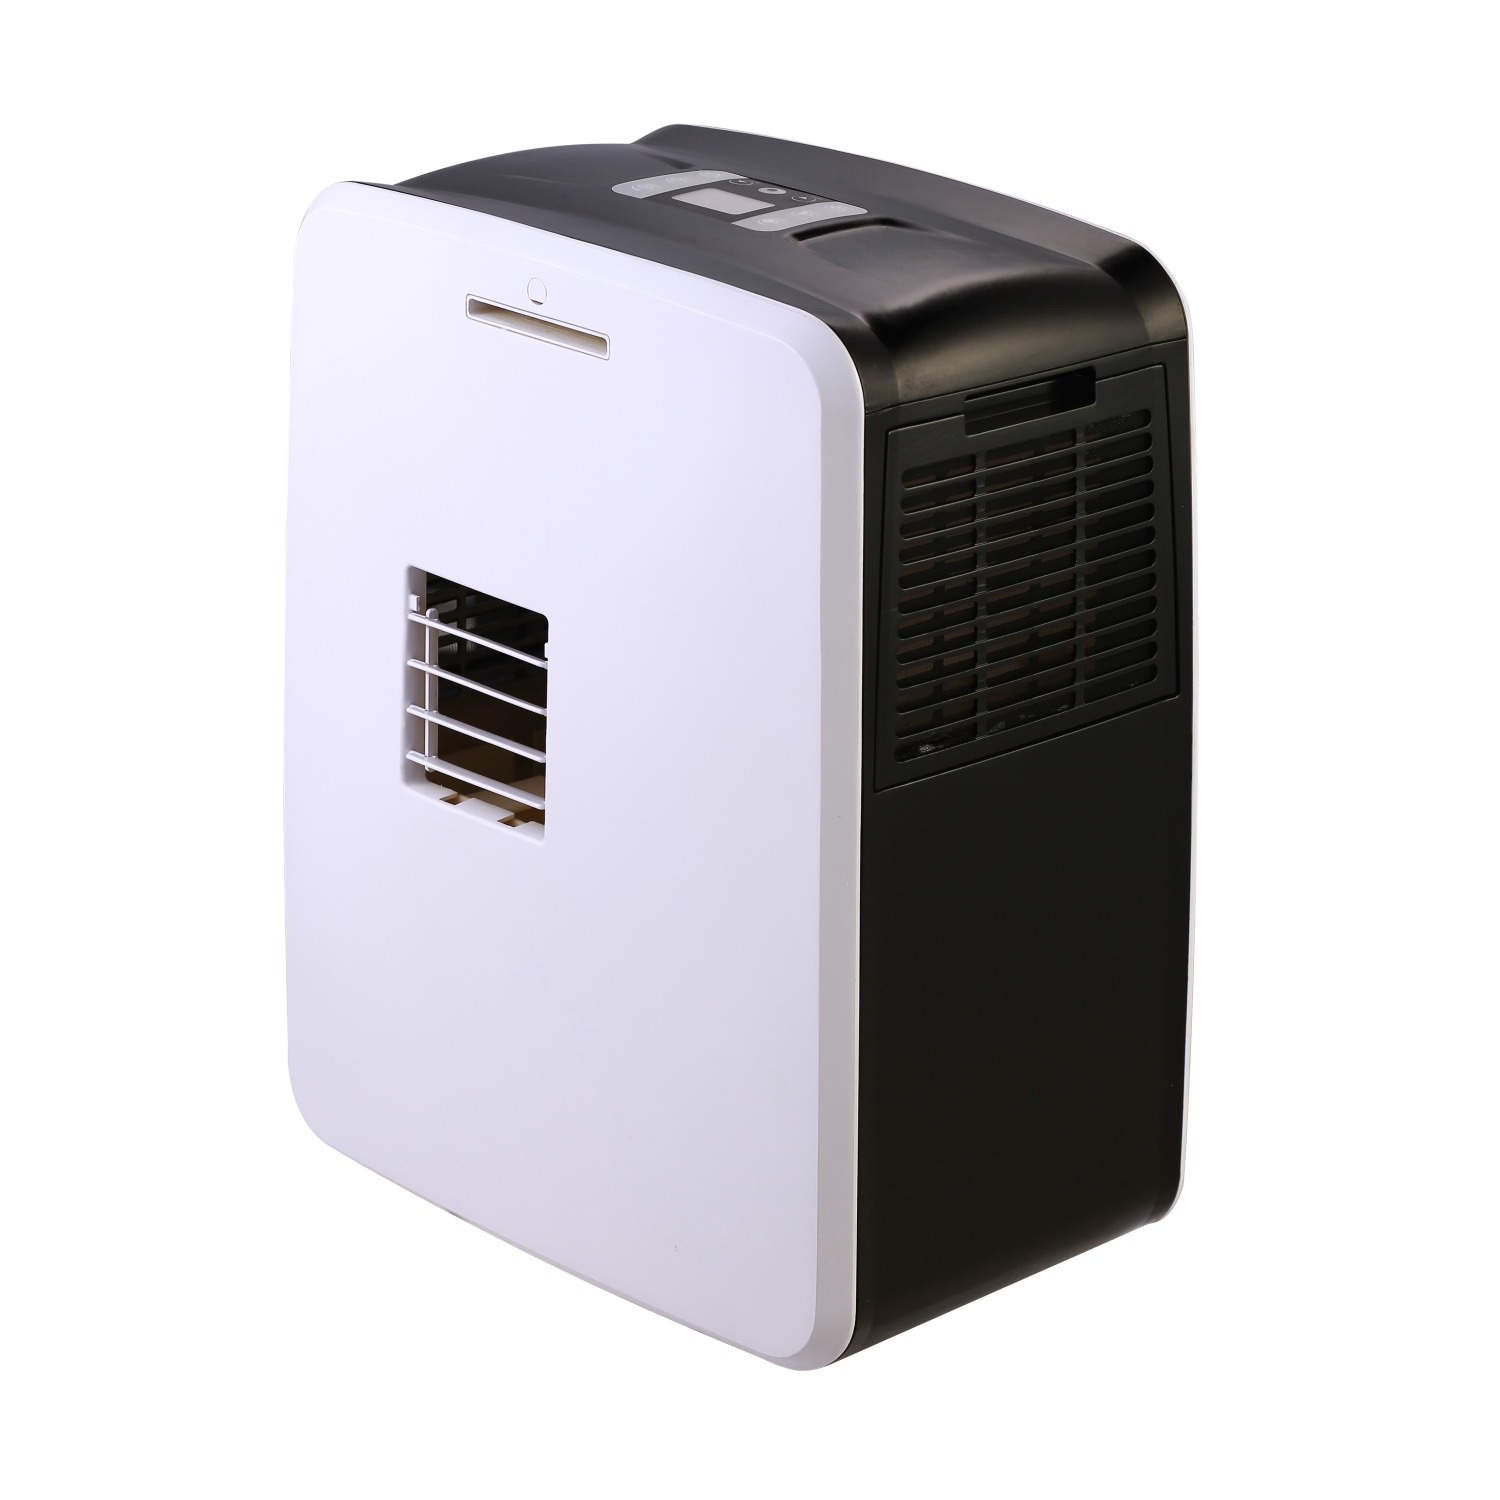 #544883 4000 BTU Slim Portable Air Conditioner Mobile Air  Recommended 10957 Air Conditioning Units For Mobile Homes pics with 1500x1500 px on helpvideos.info - Air Conditioners, Air Coolers and more